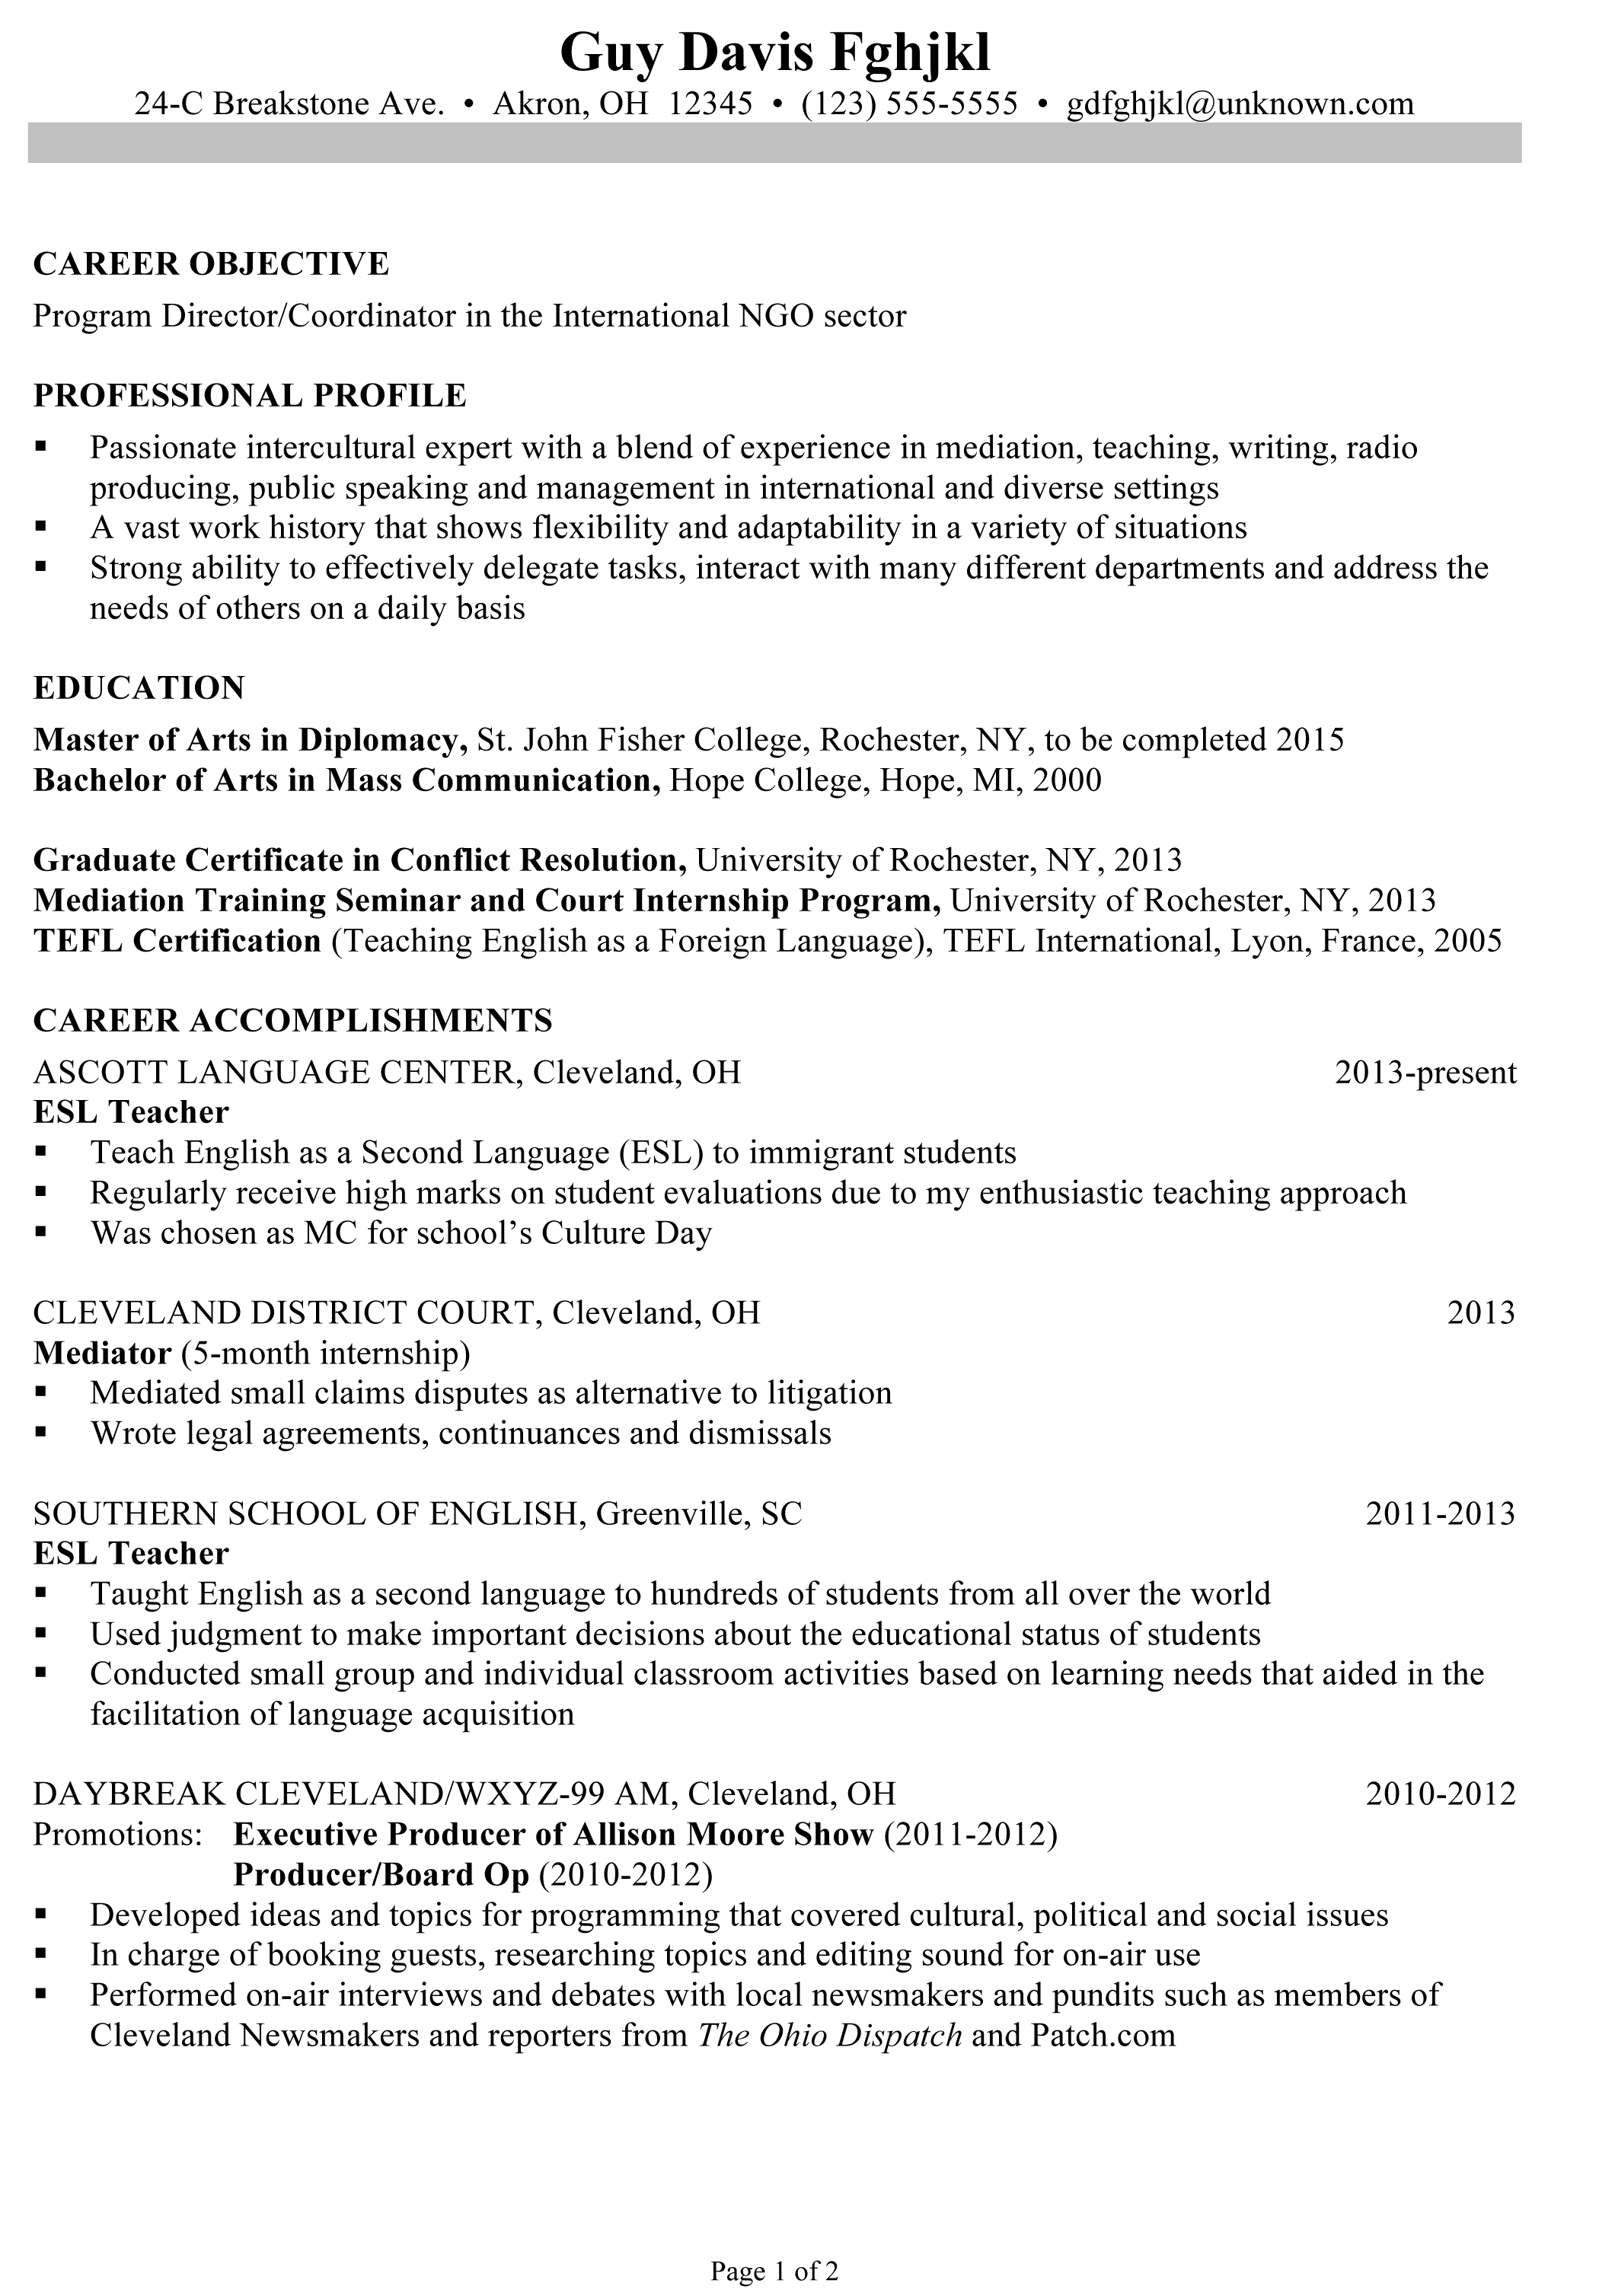 Chronological Resume Sample Chronological Resume Sample Program Director Coordinator  My